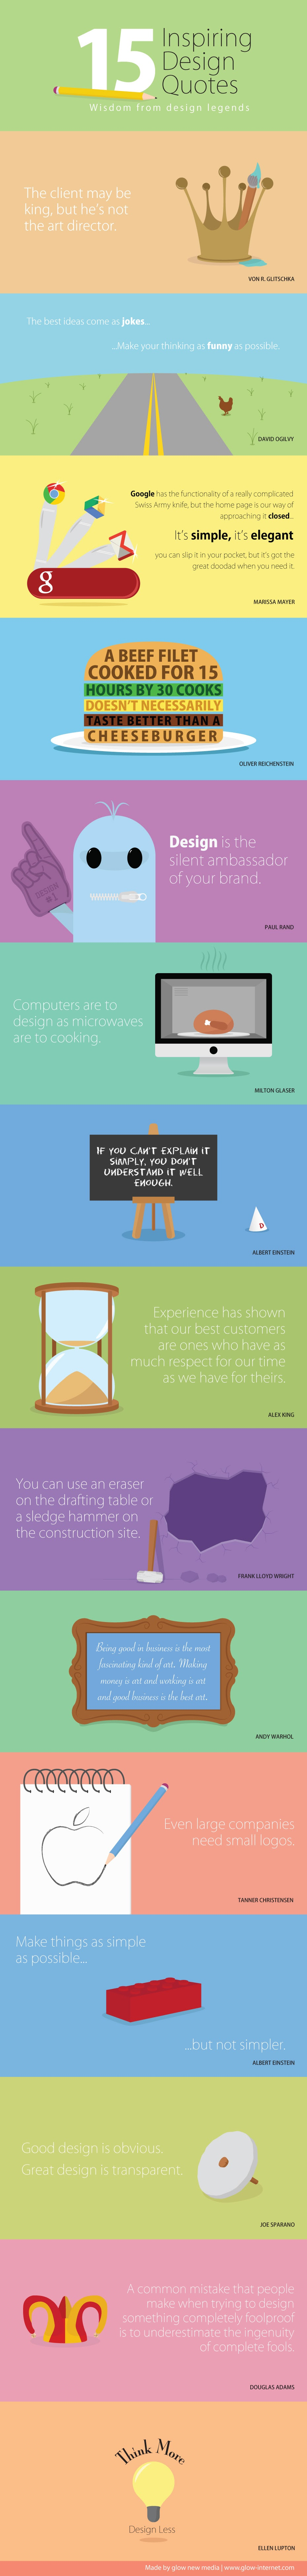 15 Inspiring Design Quotes - #infographic